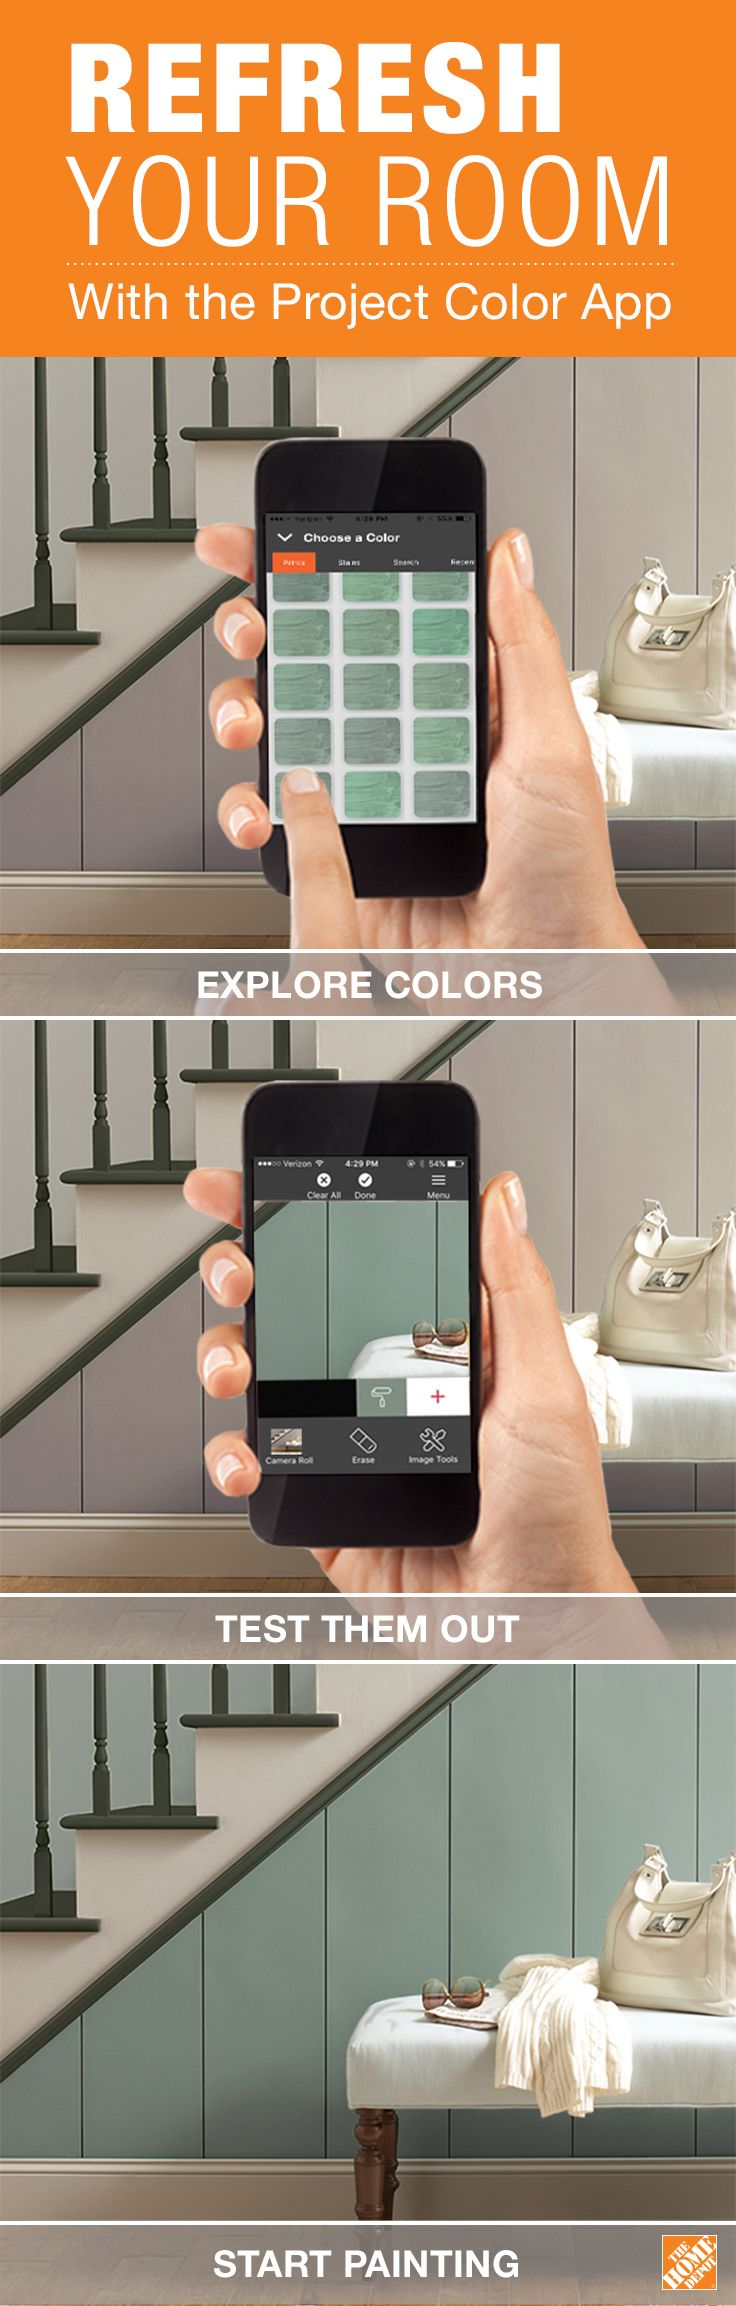 Search project color by the home depot on your iphone or android to download home depot paint colors